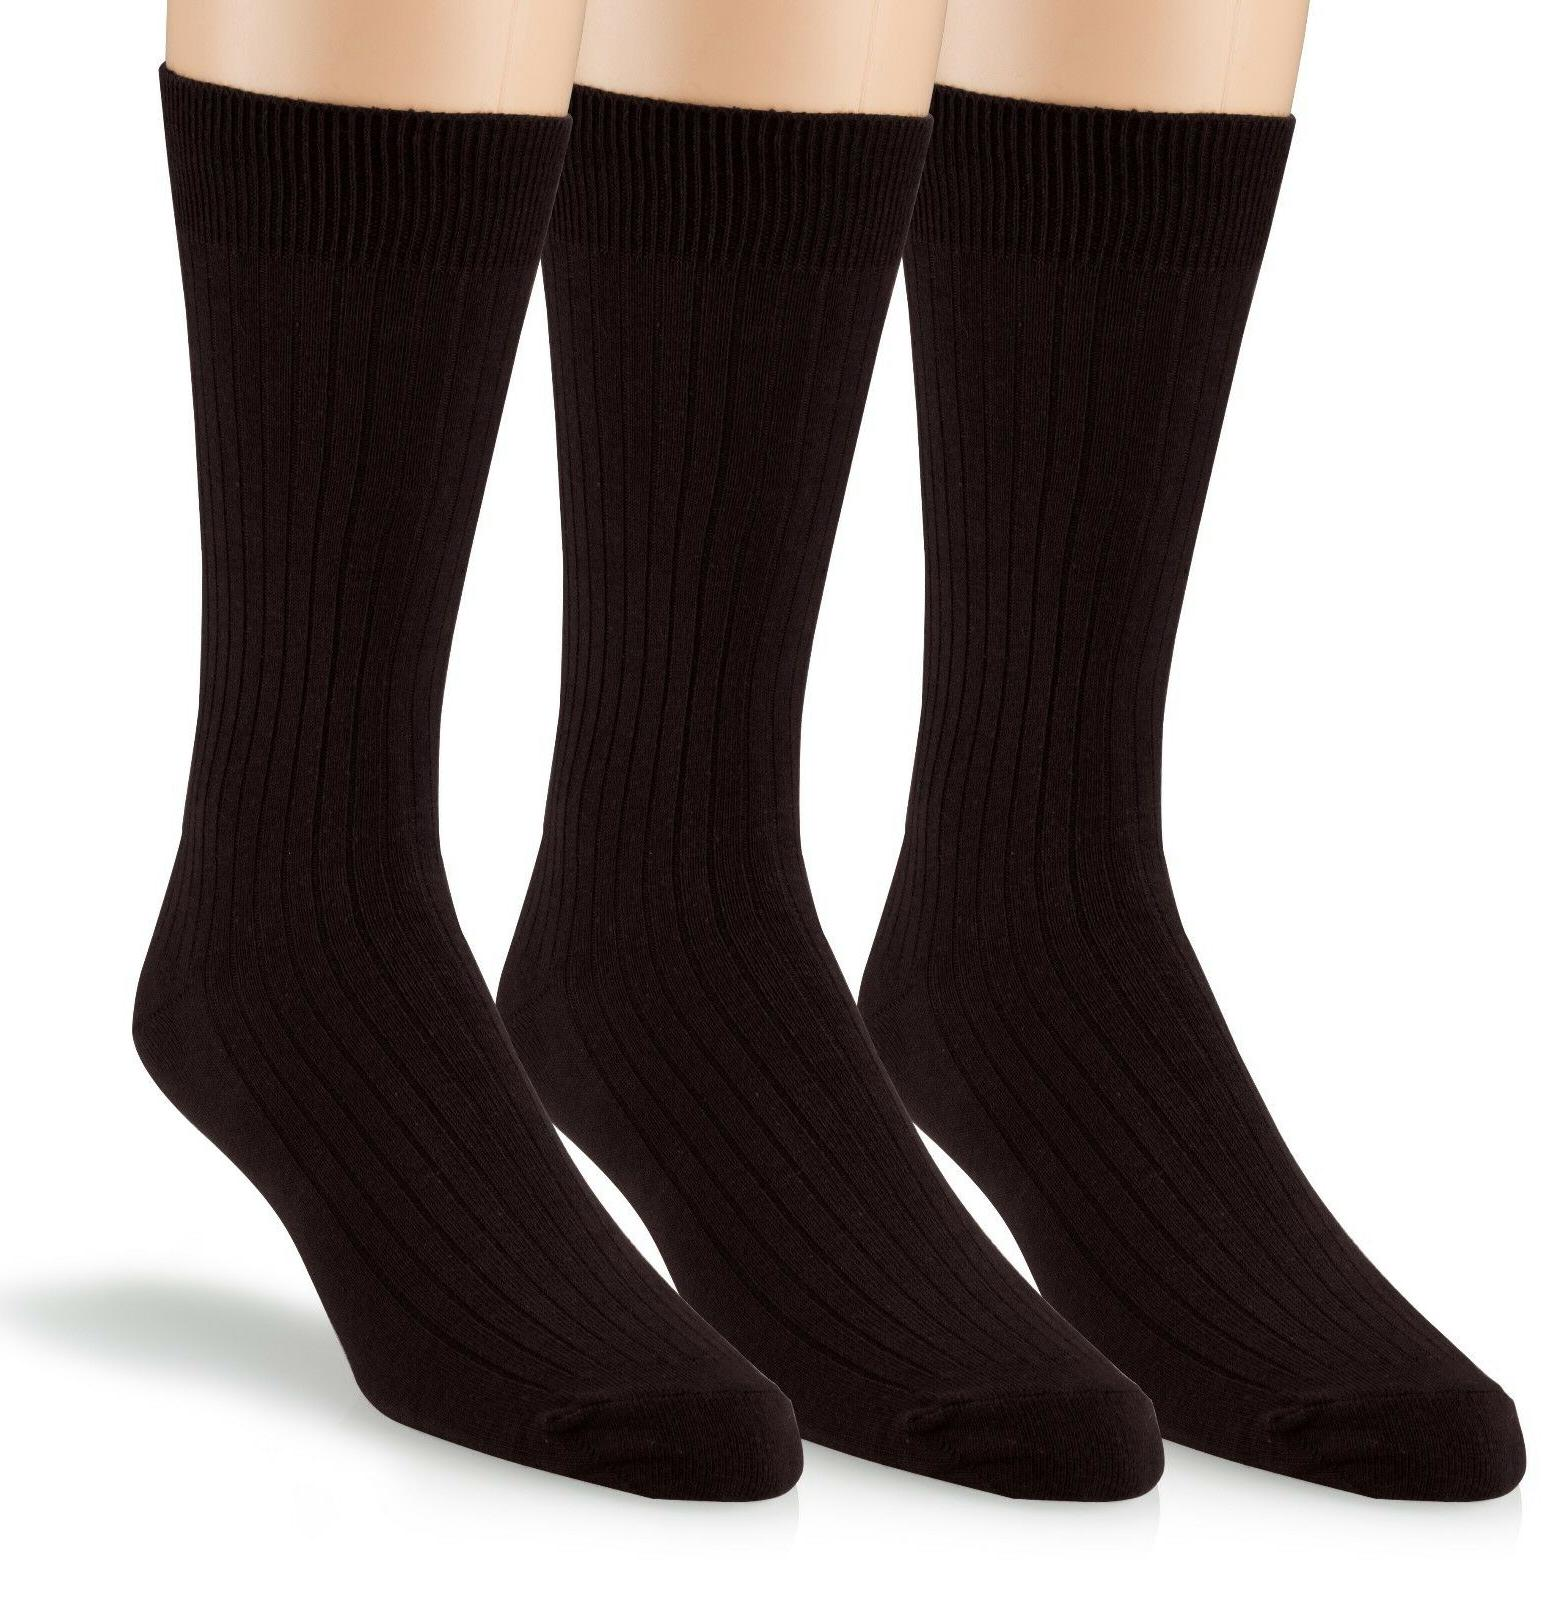 Women's Soft Ribbed Cotton Knit Crew Dress Socks 3-Pack, Plu